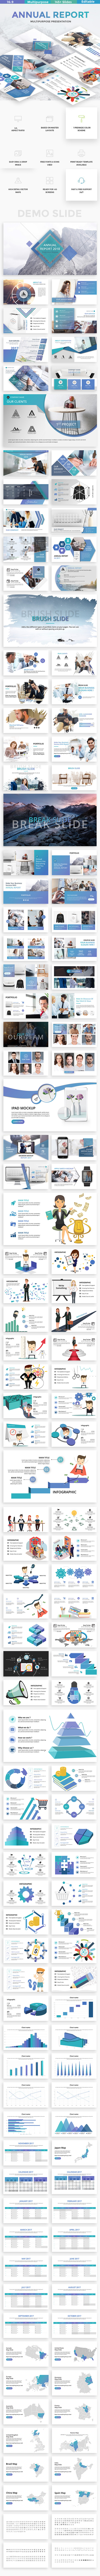 Annual Report Google Slide Template - Google Slides Presentation Templates